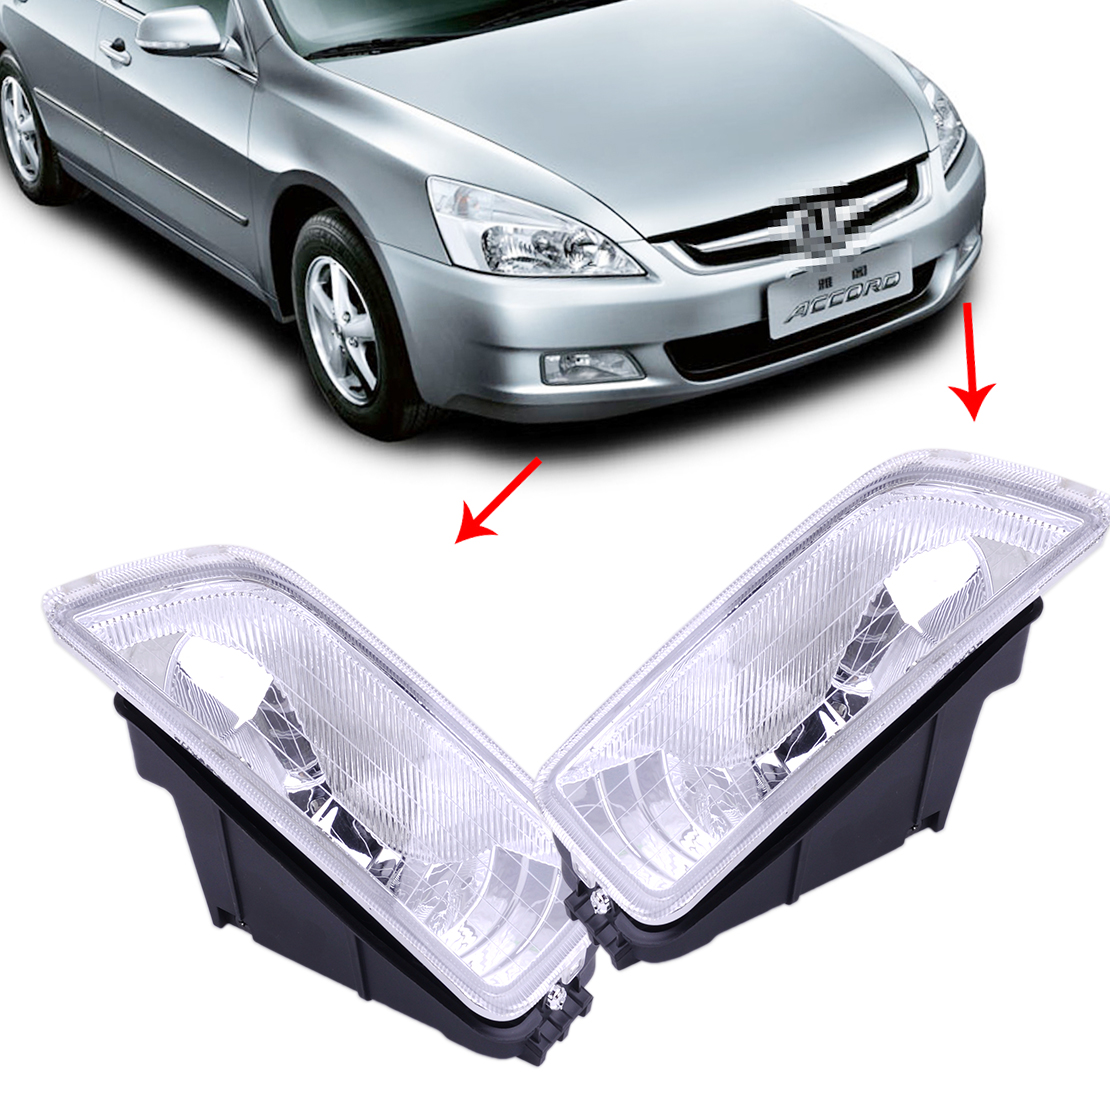 beler 1Pair 33951-SDA-H01 33901-SDA-H01 Front Left & Right Fog Light Lamp Cover Fit for Honda Accord 2003 2004 2005 2006 2007 jicosmoslu front left right fog light lamp anti fog lamp light lifan smily 320 f4116100 f4116100a2 f4116200 f4116200a2